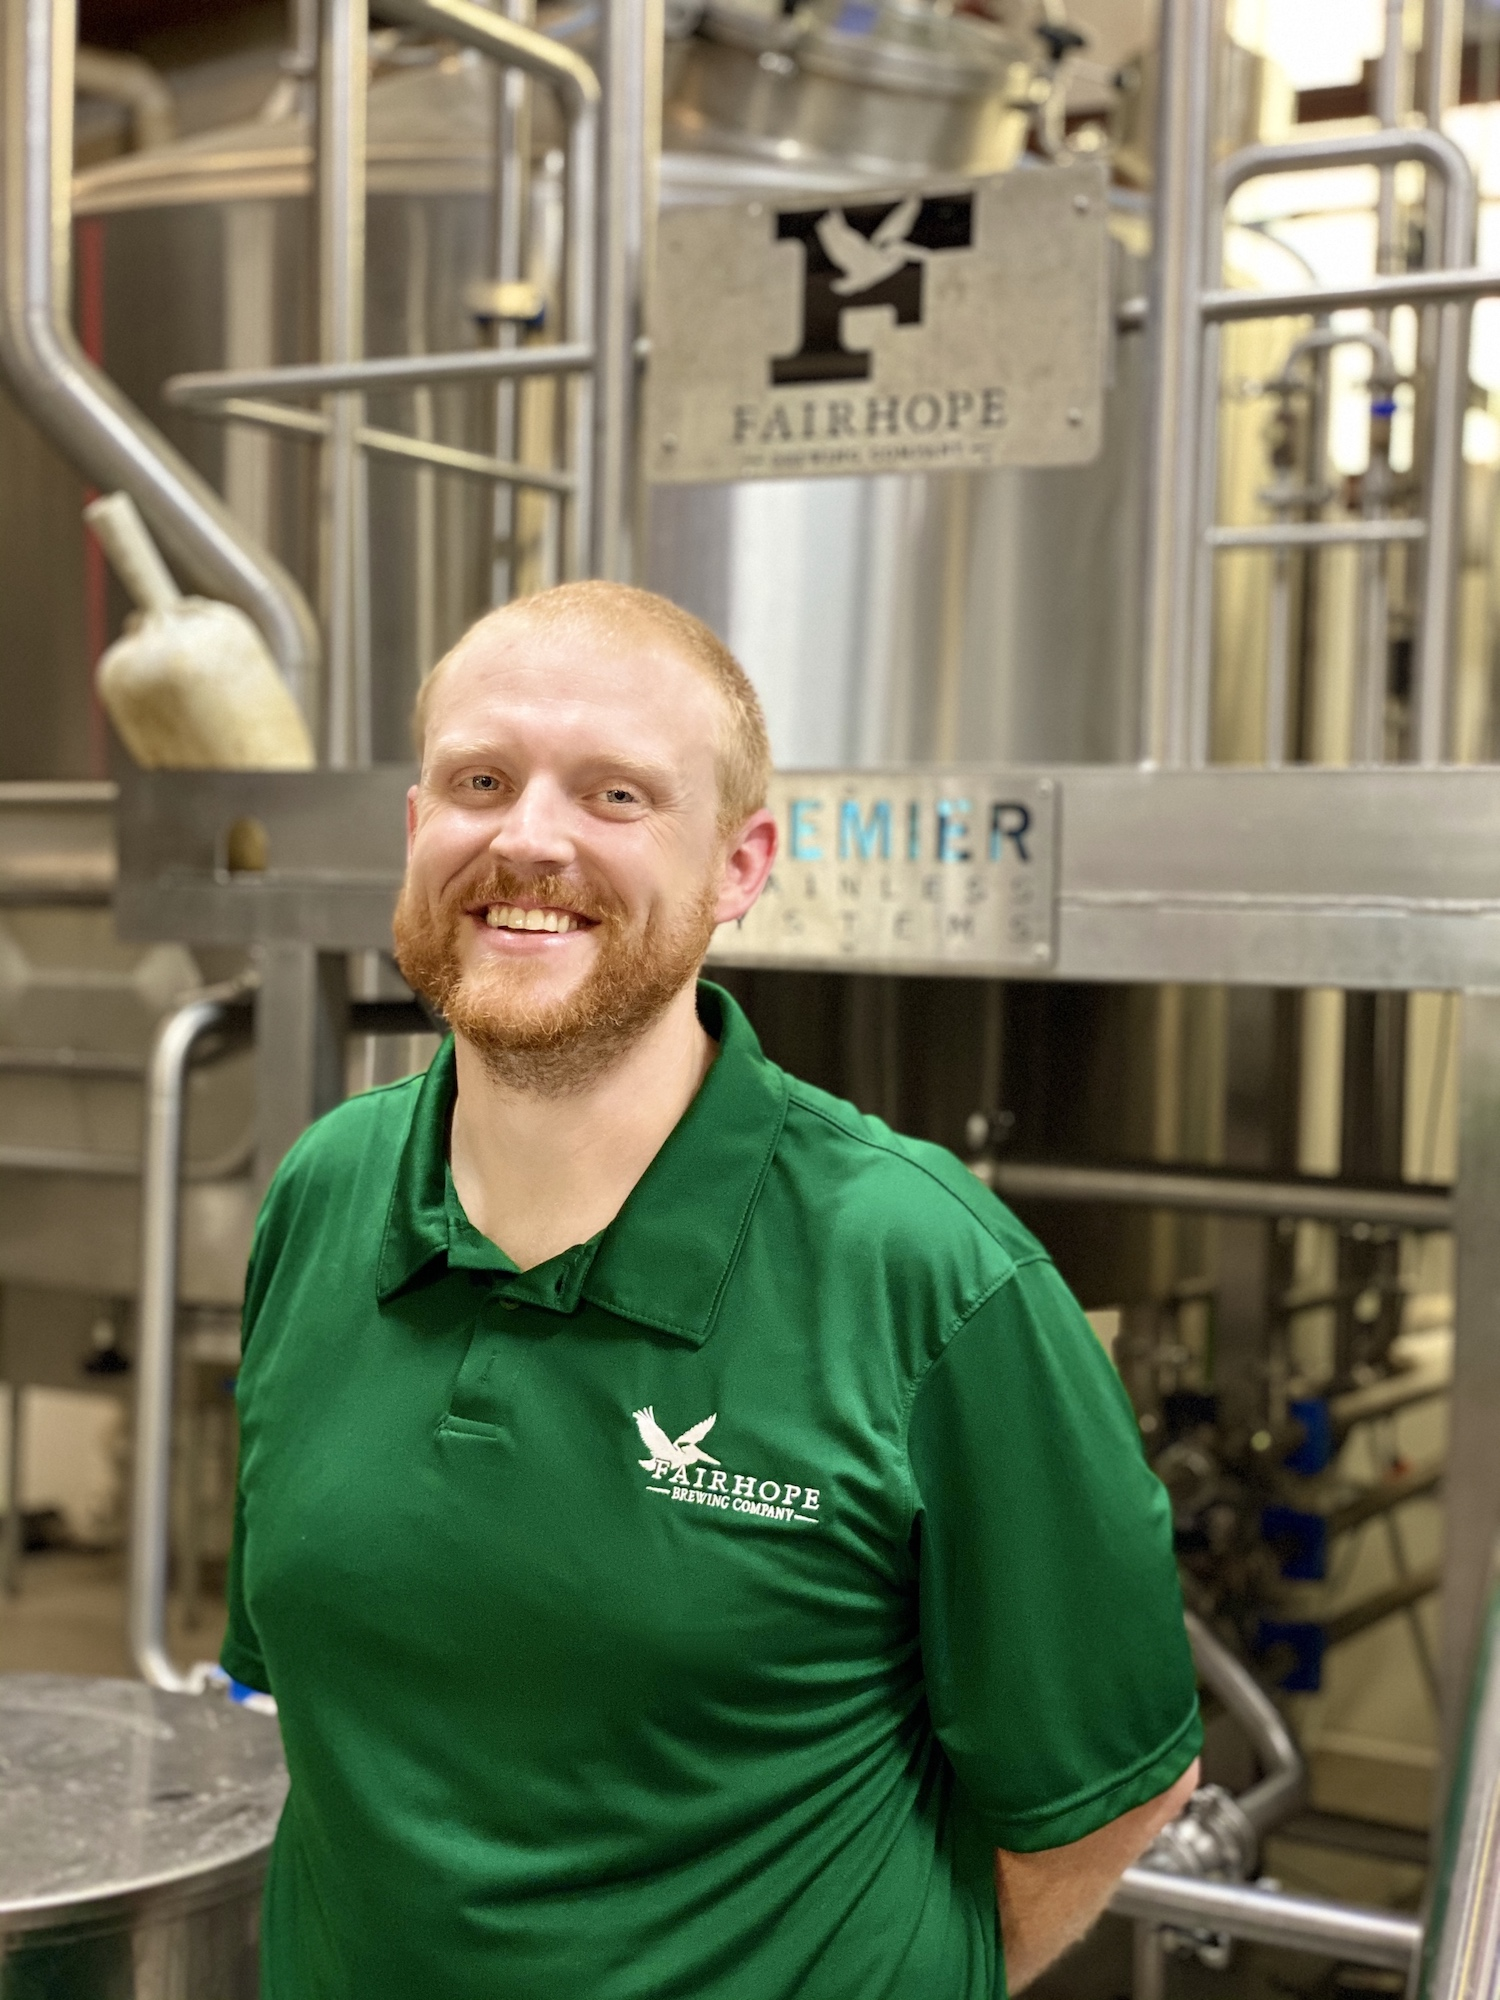 Fairhope Brewing Company Welcomes New Head Brewer